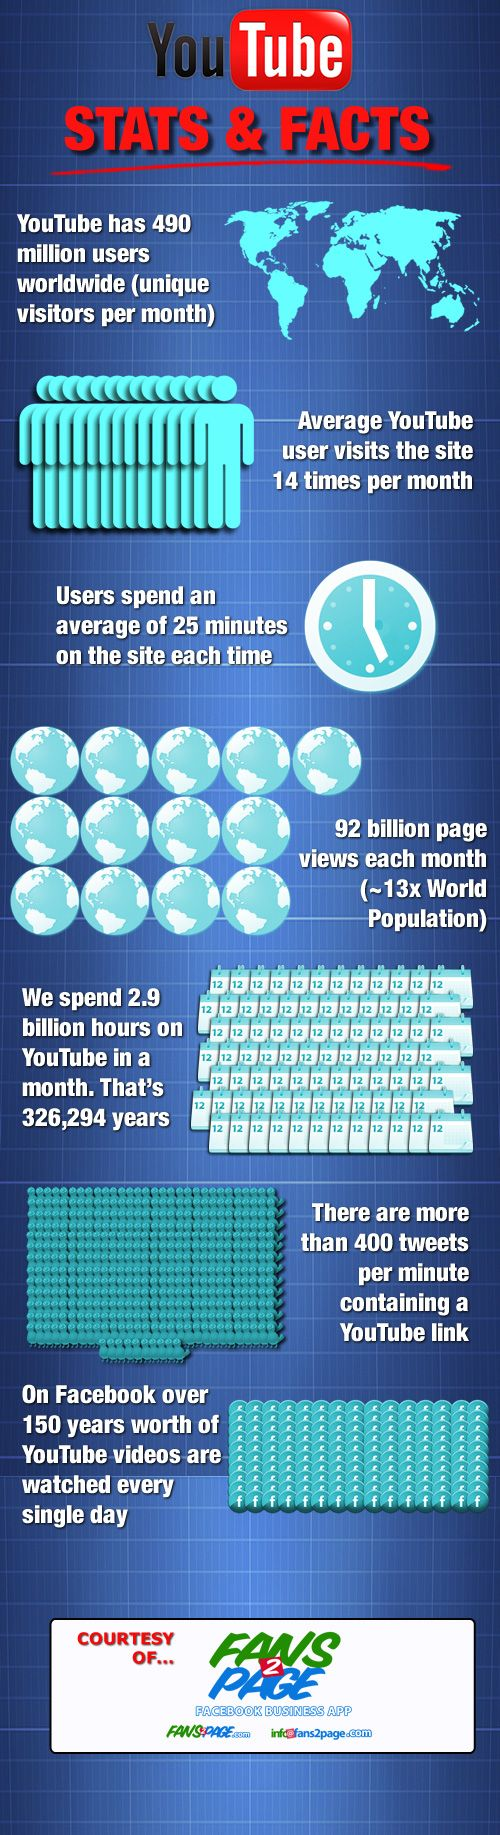 You Tube Incredible Stats & Facts - 2013  # Facebookmarketing #onlinemarketing #onlinePR